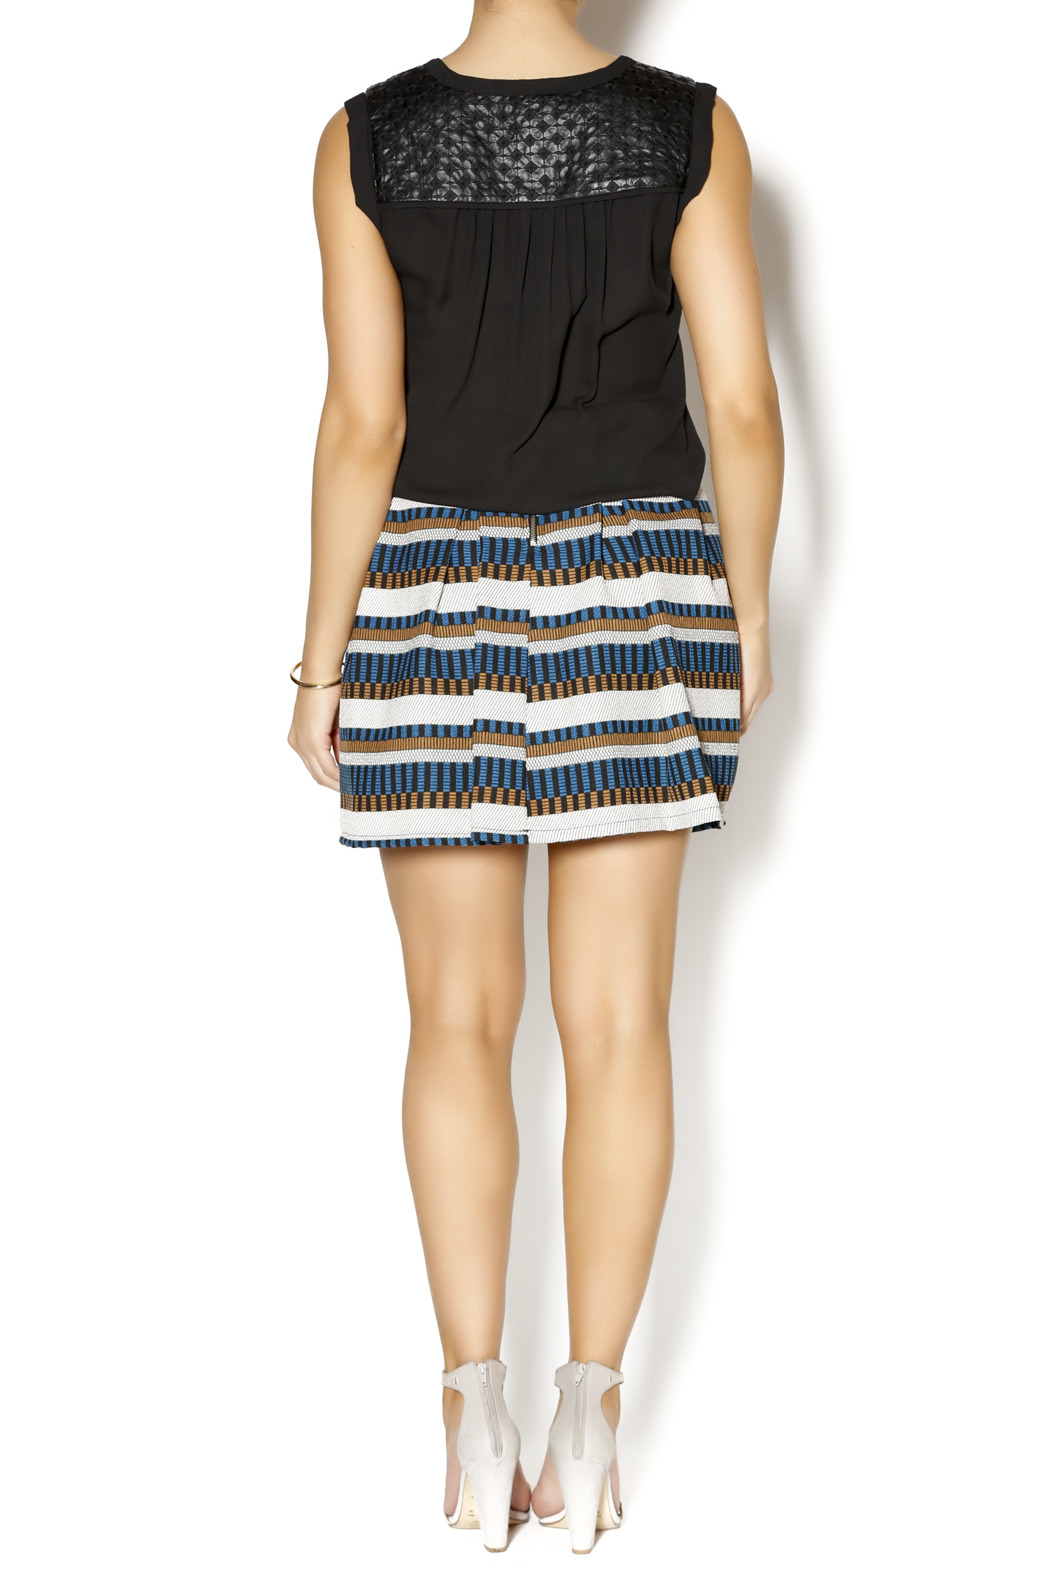 freeway high waisted striped skirt from utah by q clothing